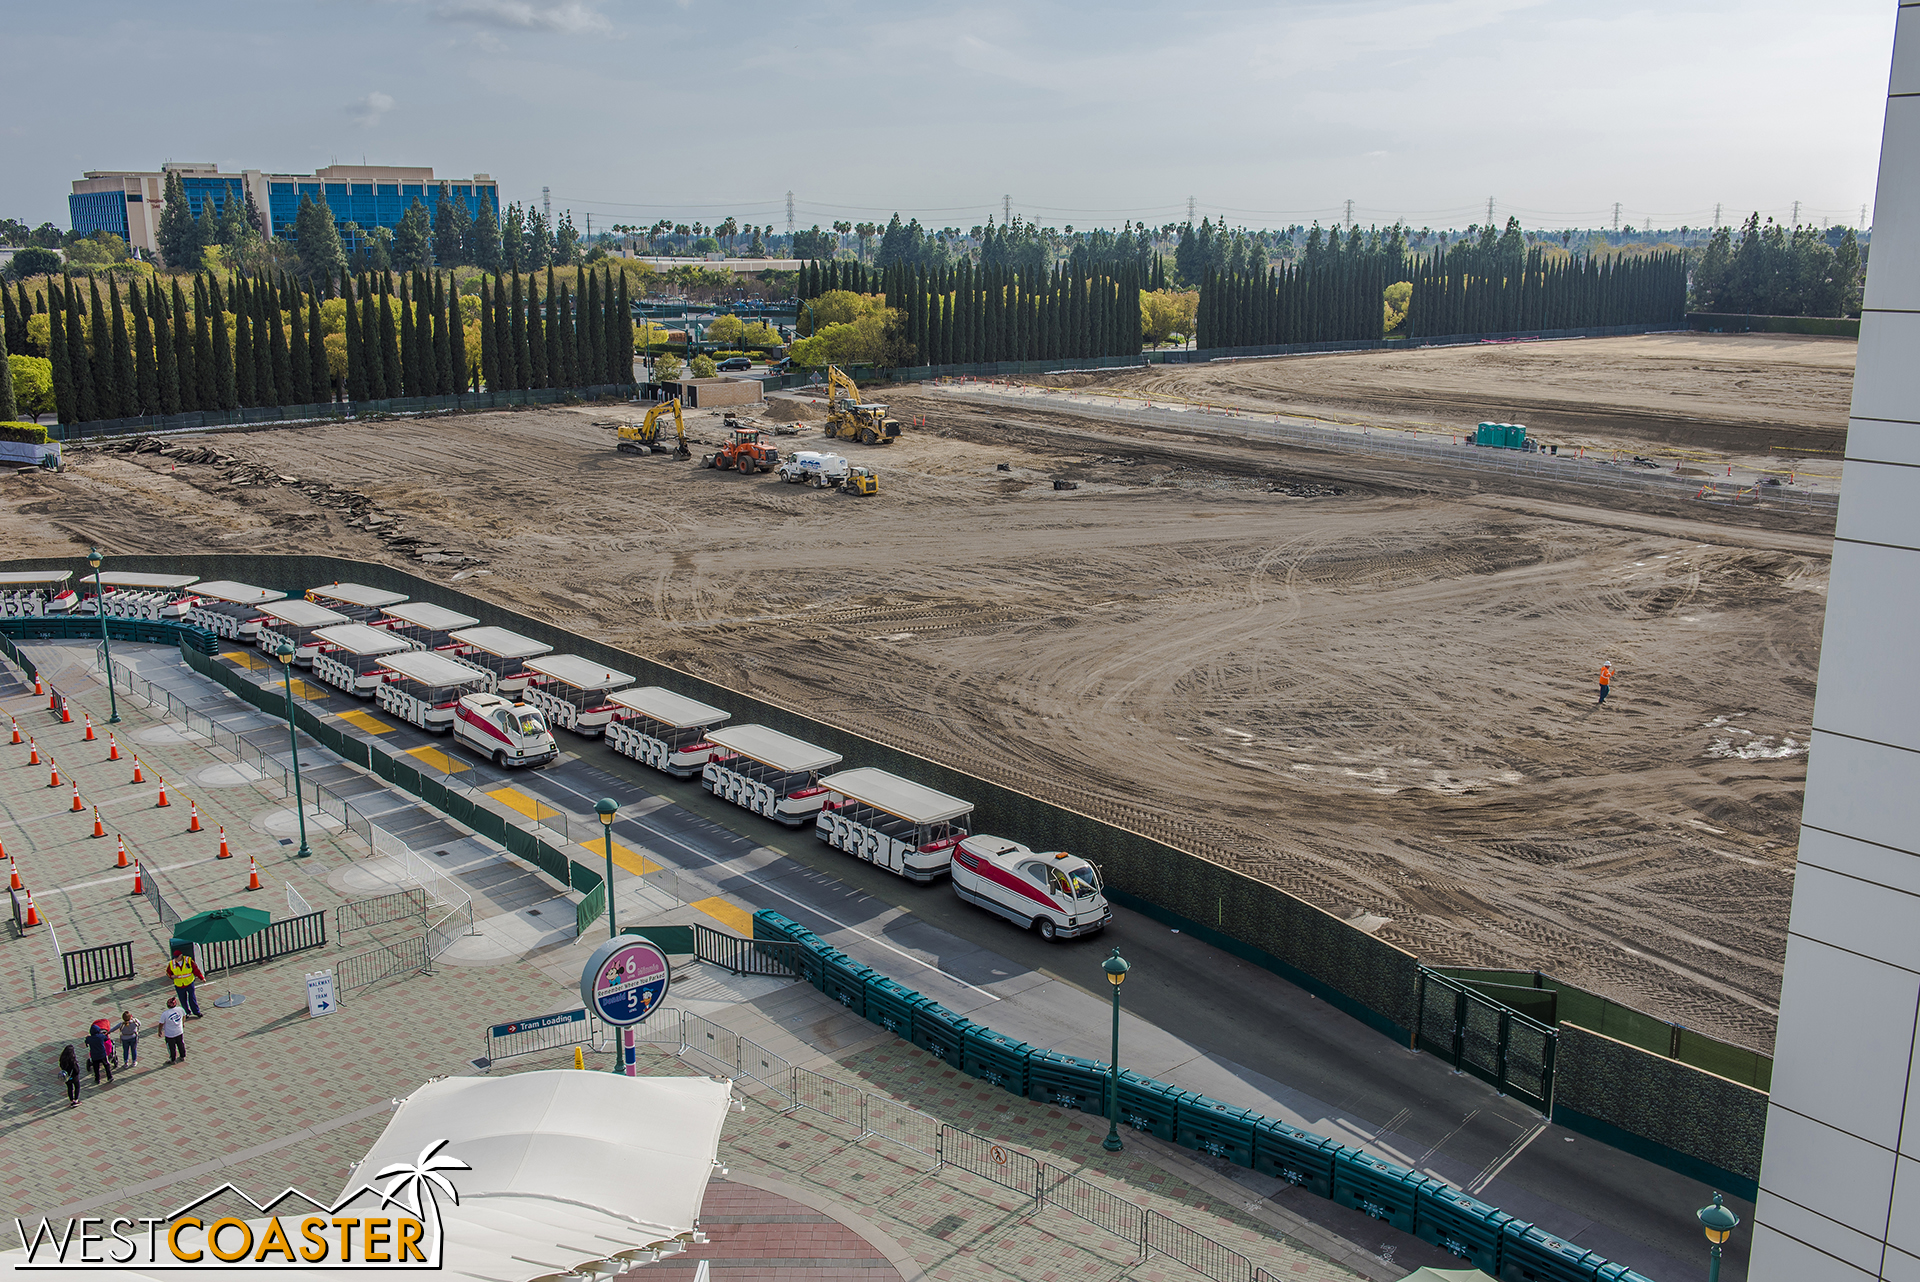 Well, will ya look at that, the dirt has taken over almost the entirety of the old Pinocchio parking lot!